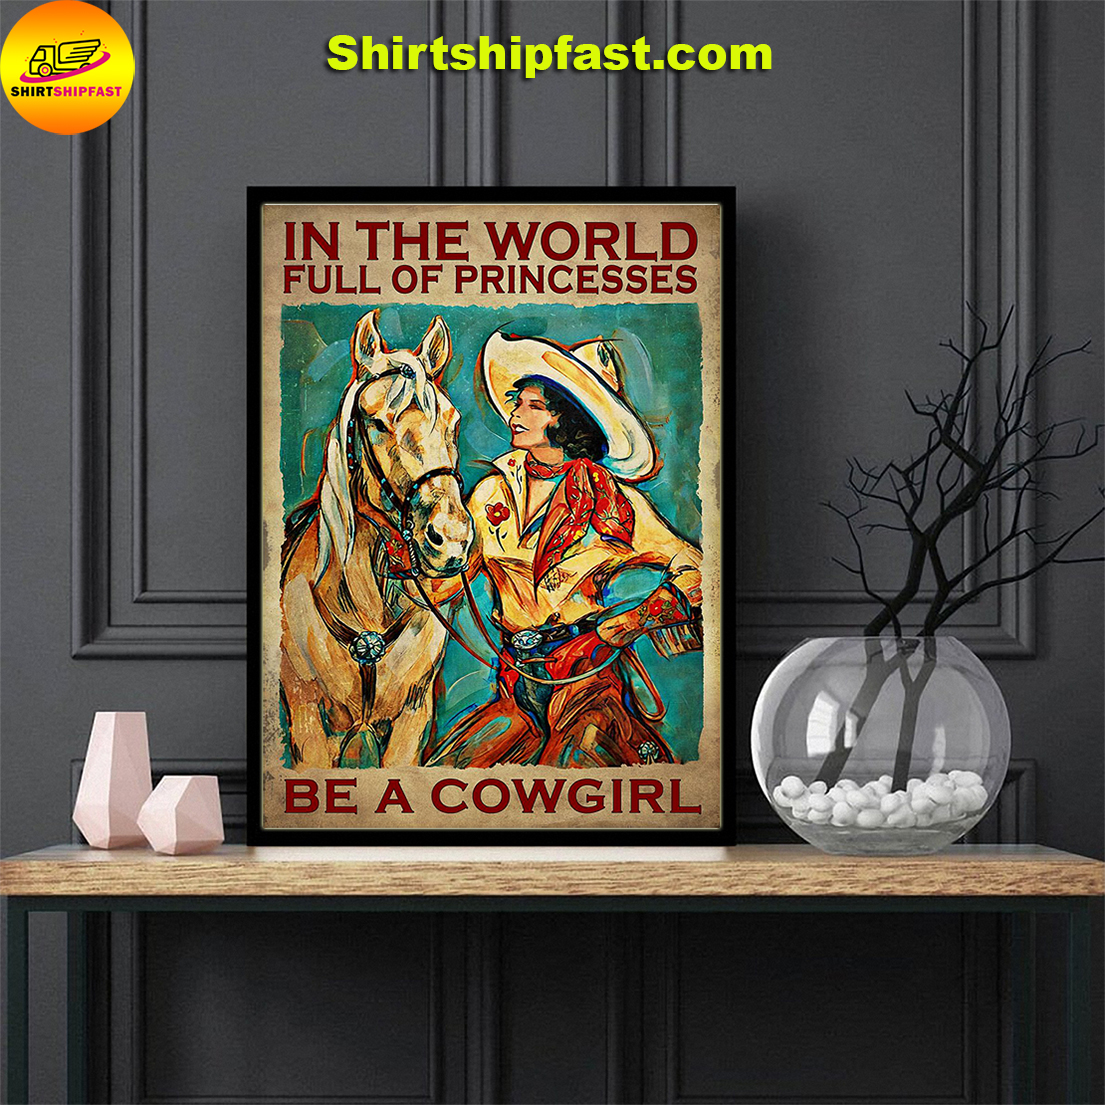 In the world full of princesses be a cowgirl poster - Picture 1